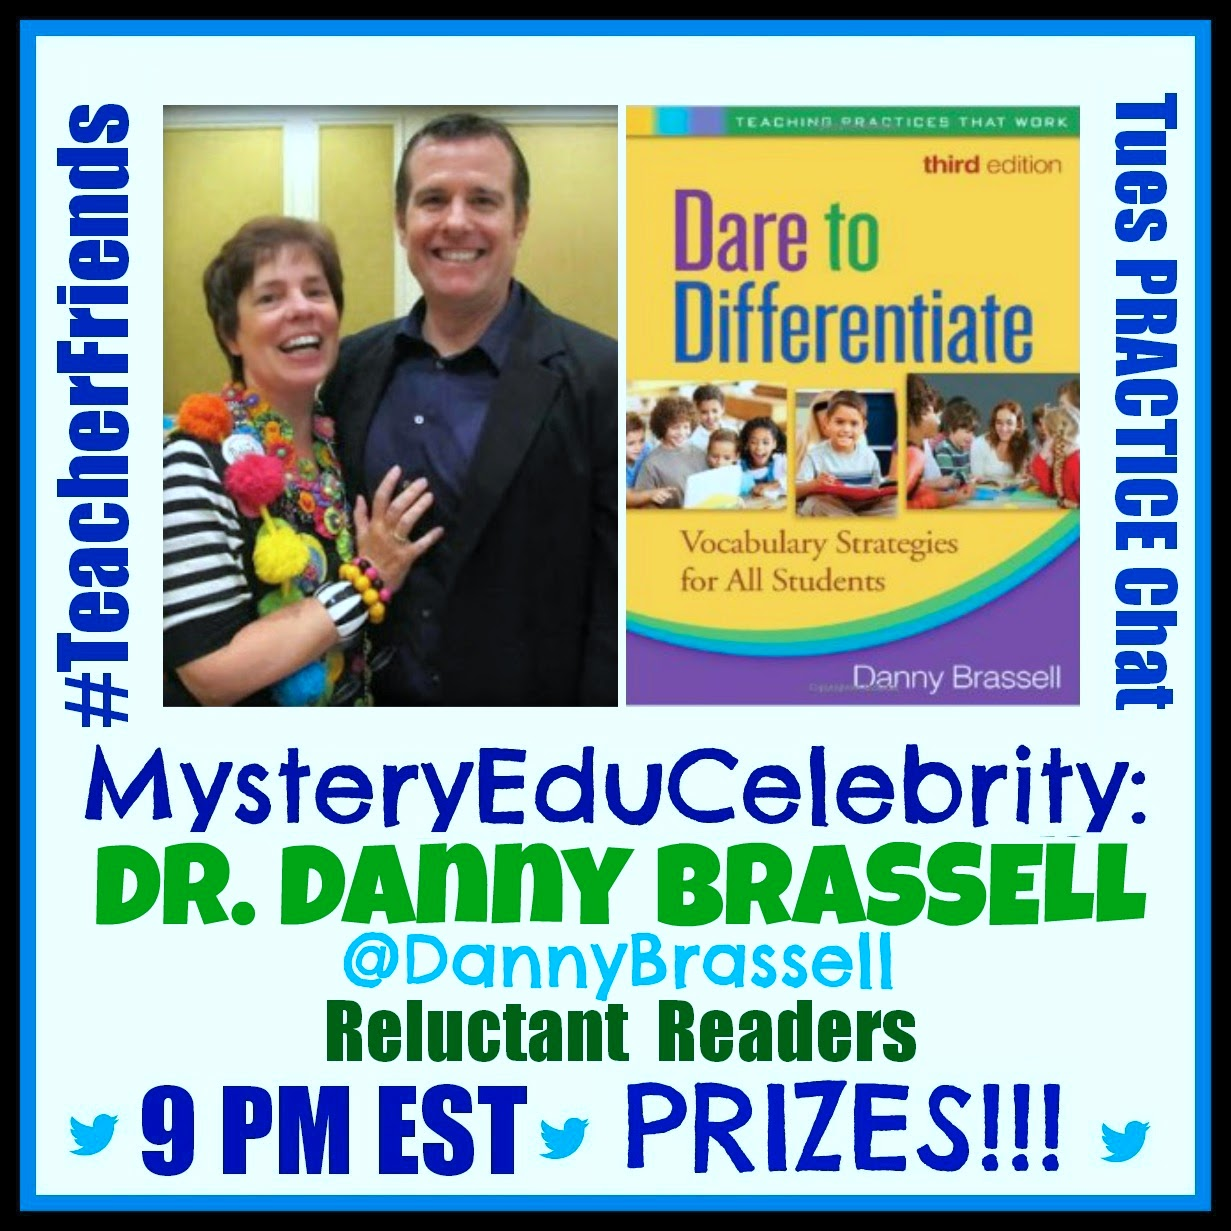 Dr. Danny Brassell #GuestEduCelebrity on #TeacherFriends PRACTICE Chat!